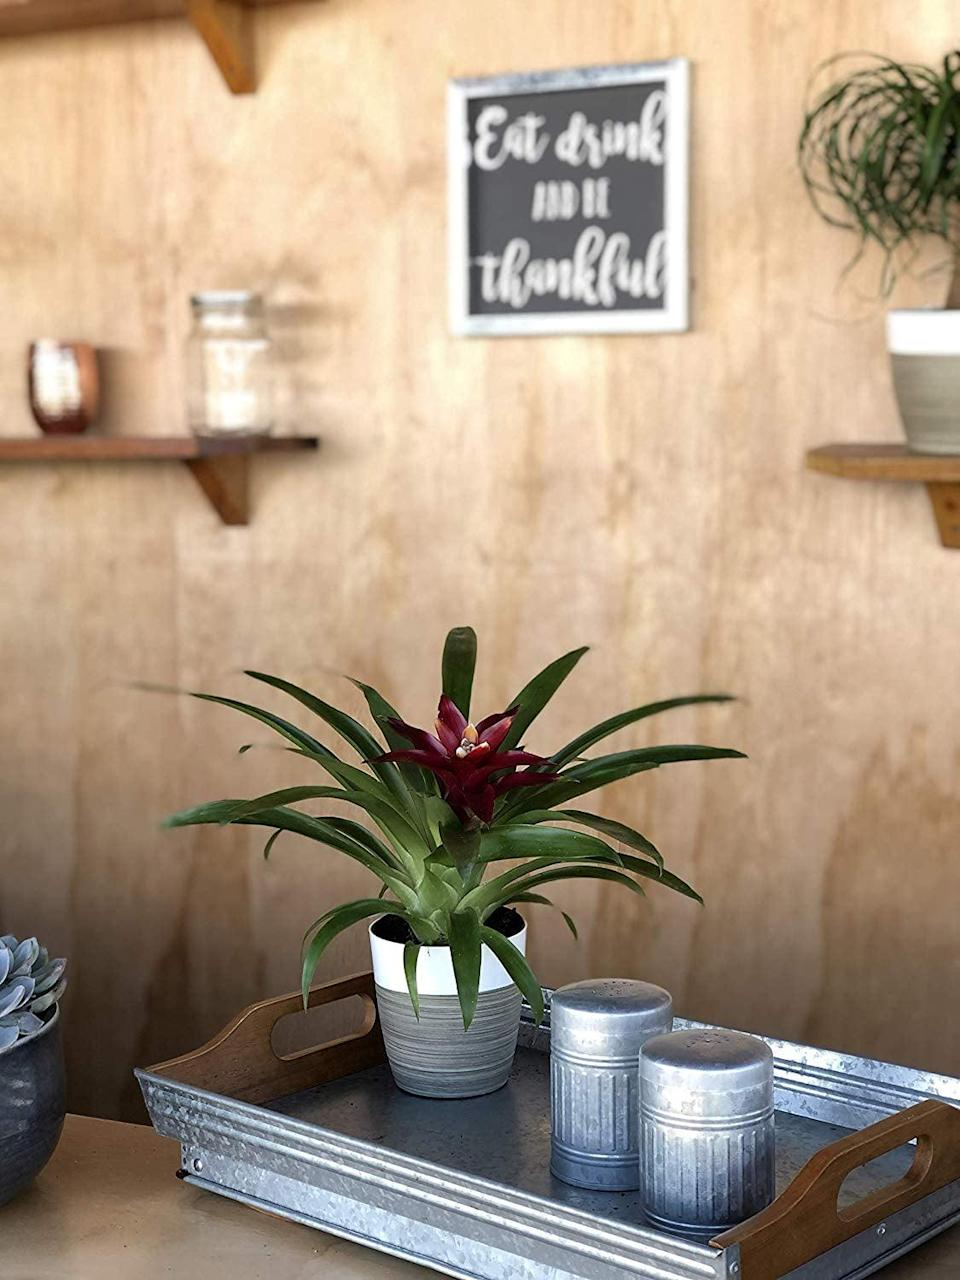 """<p>The <a href=""""https://www.popsugar.com/buy/Costa-Farms-Flowering-Bromeliad-Indoor-Plant-444302?p_name=Costa%20Farms%20Flowering%20Bromeliad%20Indoor%20Plant&retailer=amazon.com&pid=444302&price=21&evar1=casa%3Aus&evar9=46127505&evar98=https%3A%2F%2Fwww.popsugar.com%2Fhome%2Fphoto-gallery%2F46127505%2Fimage%2F46128480%2FCosta-Farms-Flowering-Bromeliad-Indoor-Plant&list1=shopping%2Cgift%20guide%2Cflowers%2Chouse%20plants%2Cplants%2Cmothers%20day%2Cgifts%20for%20women&prop13=api&pdata=1"""" class=""""link rapid-noclick-resp"""" rel=""""nofollow noopener"""" target=""""_blank"""" data-ylk=""""slk:Costa Farms Flowering Bromeliad Indoor Plant"""">Costa Farms Flowering Bromeliad Indoor Plant </a> ($21) is an awesome gift as it can last for years and flaunts a gorgeous flower in the middle.</p>"""